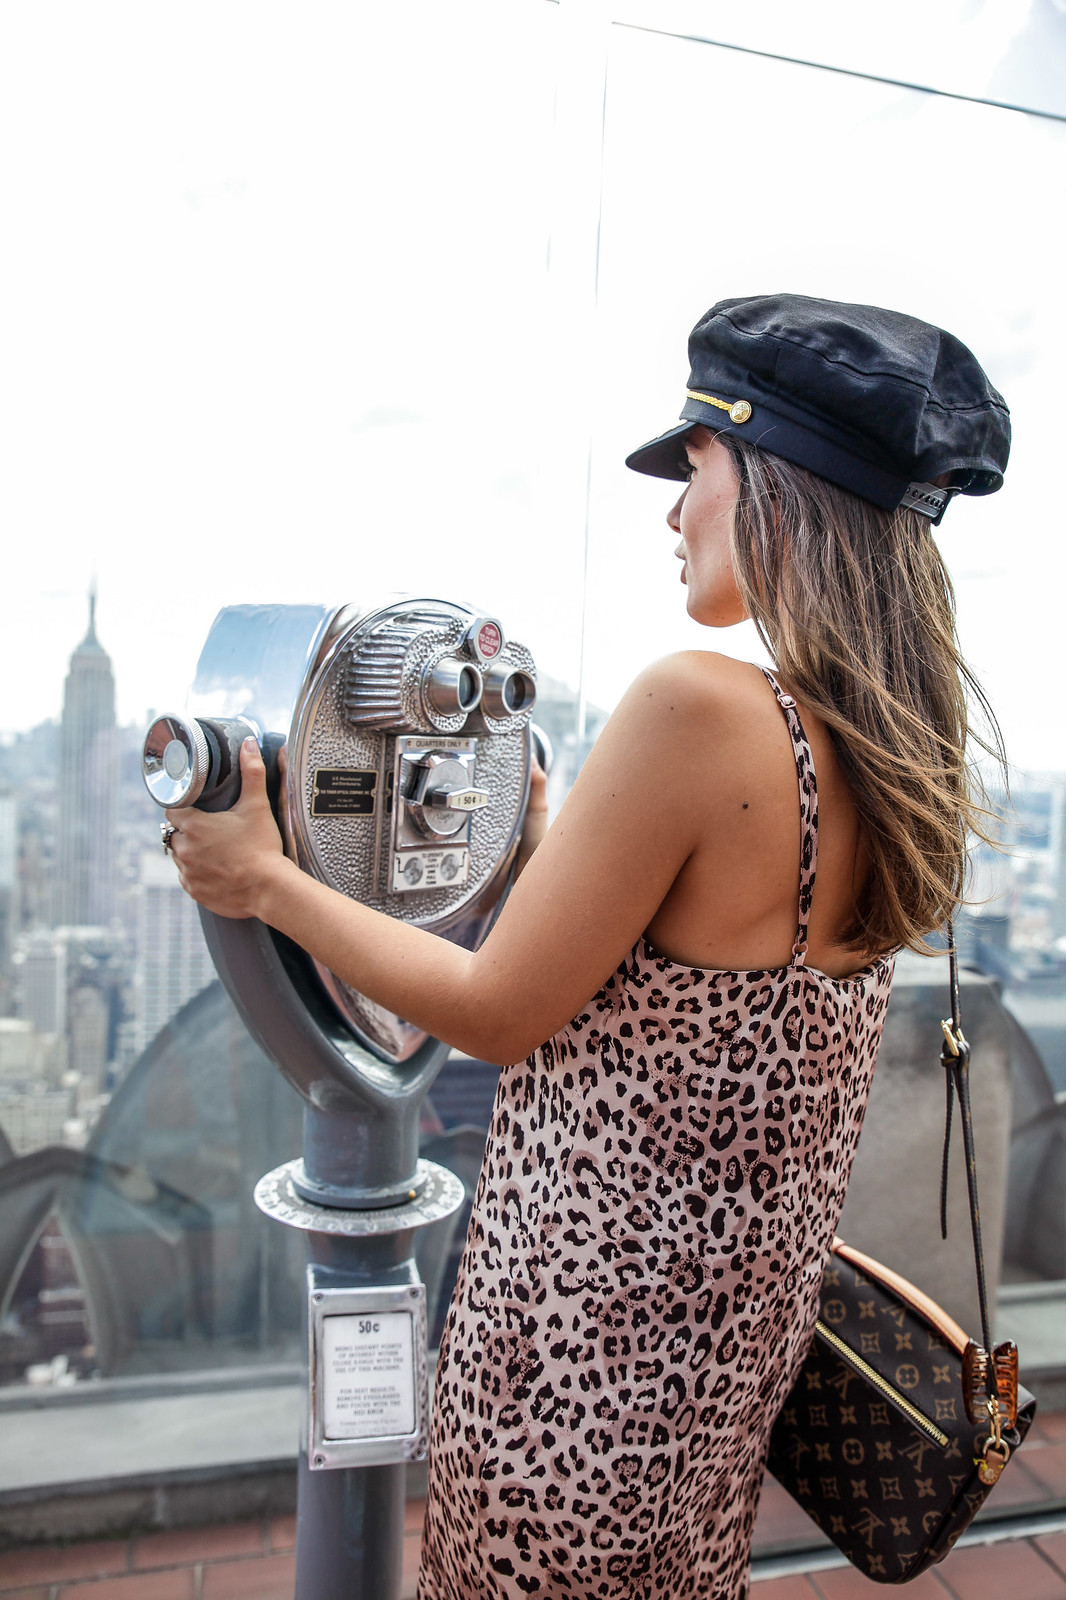 top of the rock best photo new york influencers fashion week NYFW NA-KD street style fashion outfit nueva york leopardo gorra marinera tendencia invierno nuevo 2018 moda noholita dulceida collagevintage ninauc gigivives theguestgirl look and chic the guest girl